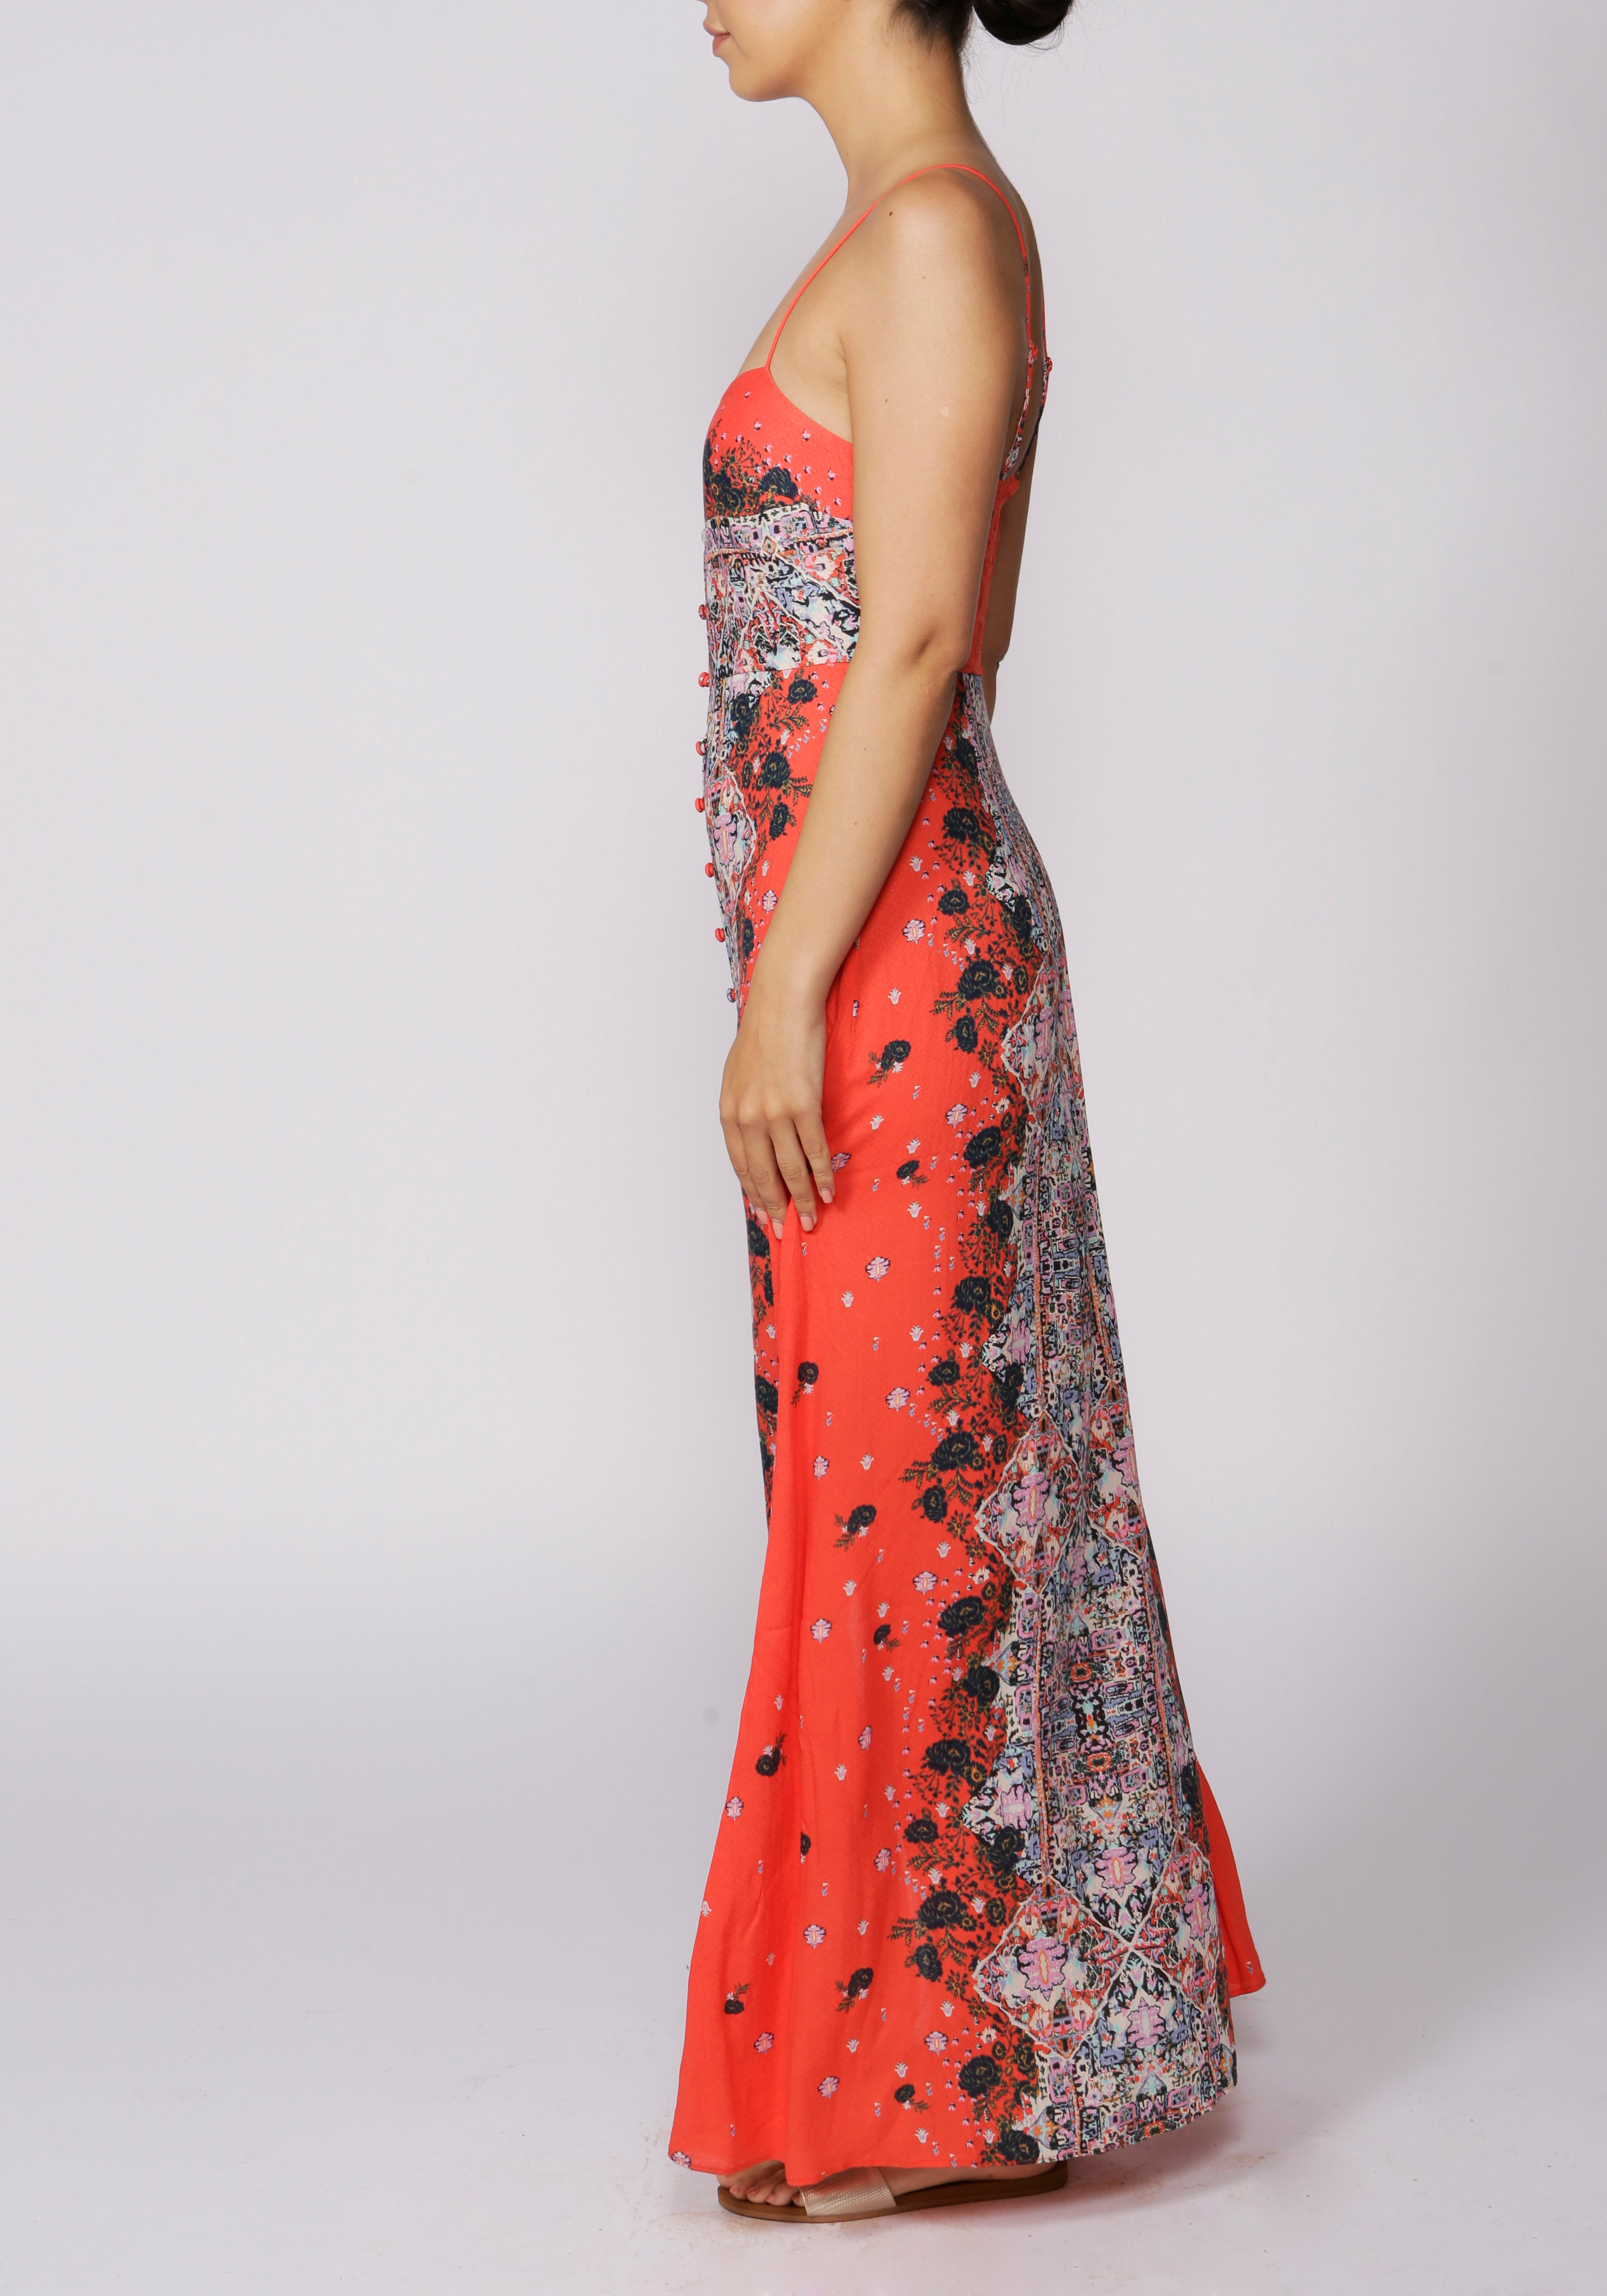 Free People Morning Song Red Printed Maxi Dress - RRP £98